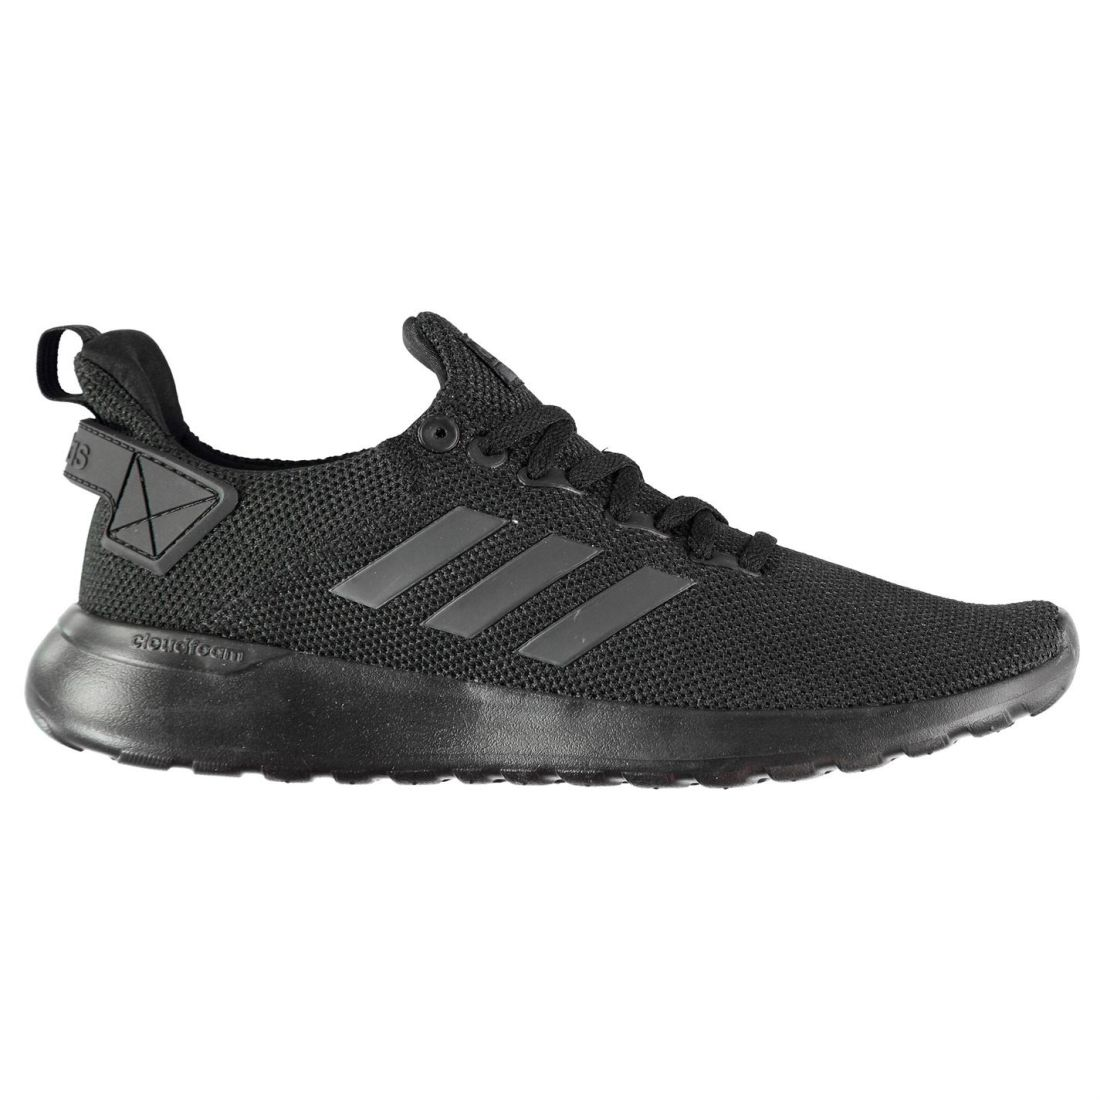 Details about adidas CloudFoam Lite Racer BYD Sneakers Mens Gents Runners Laces Fastened